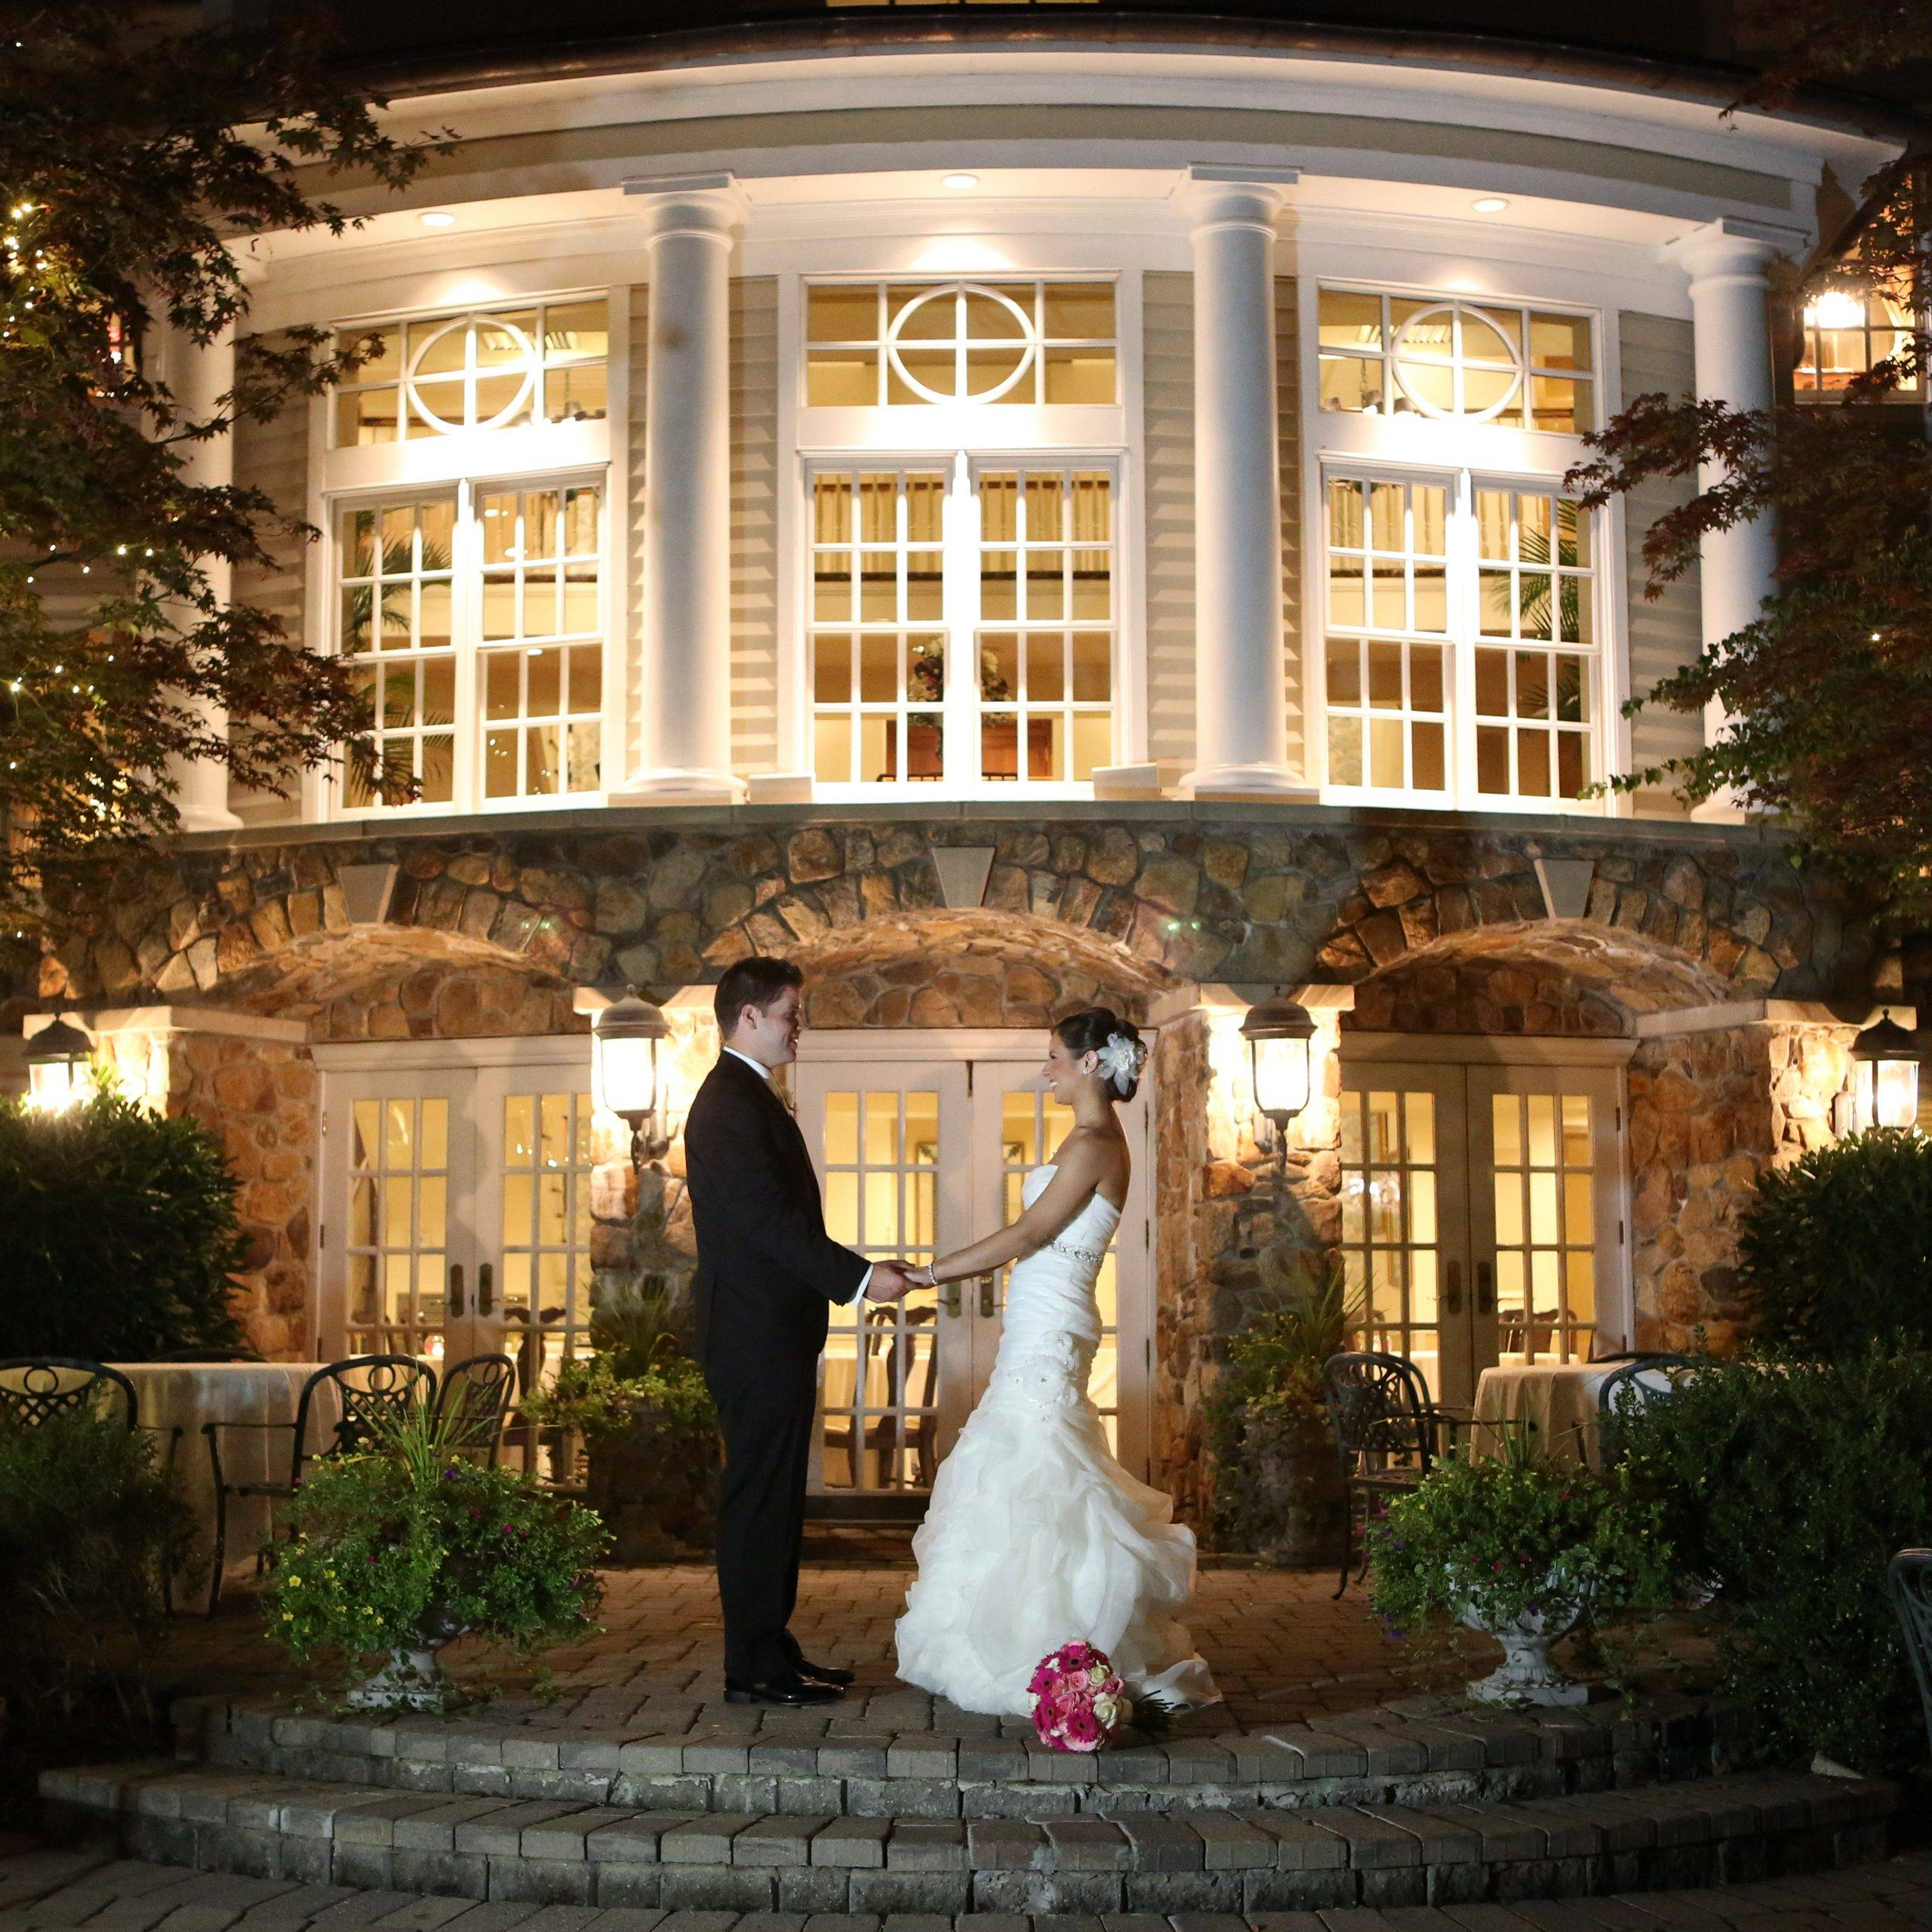 Olde Mill Inn bride and groom outside at night